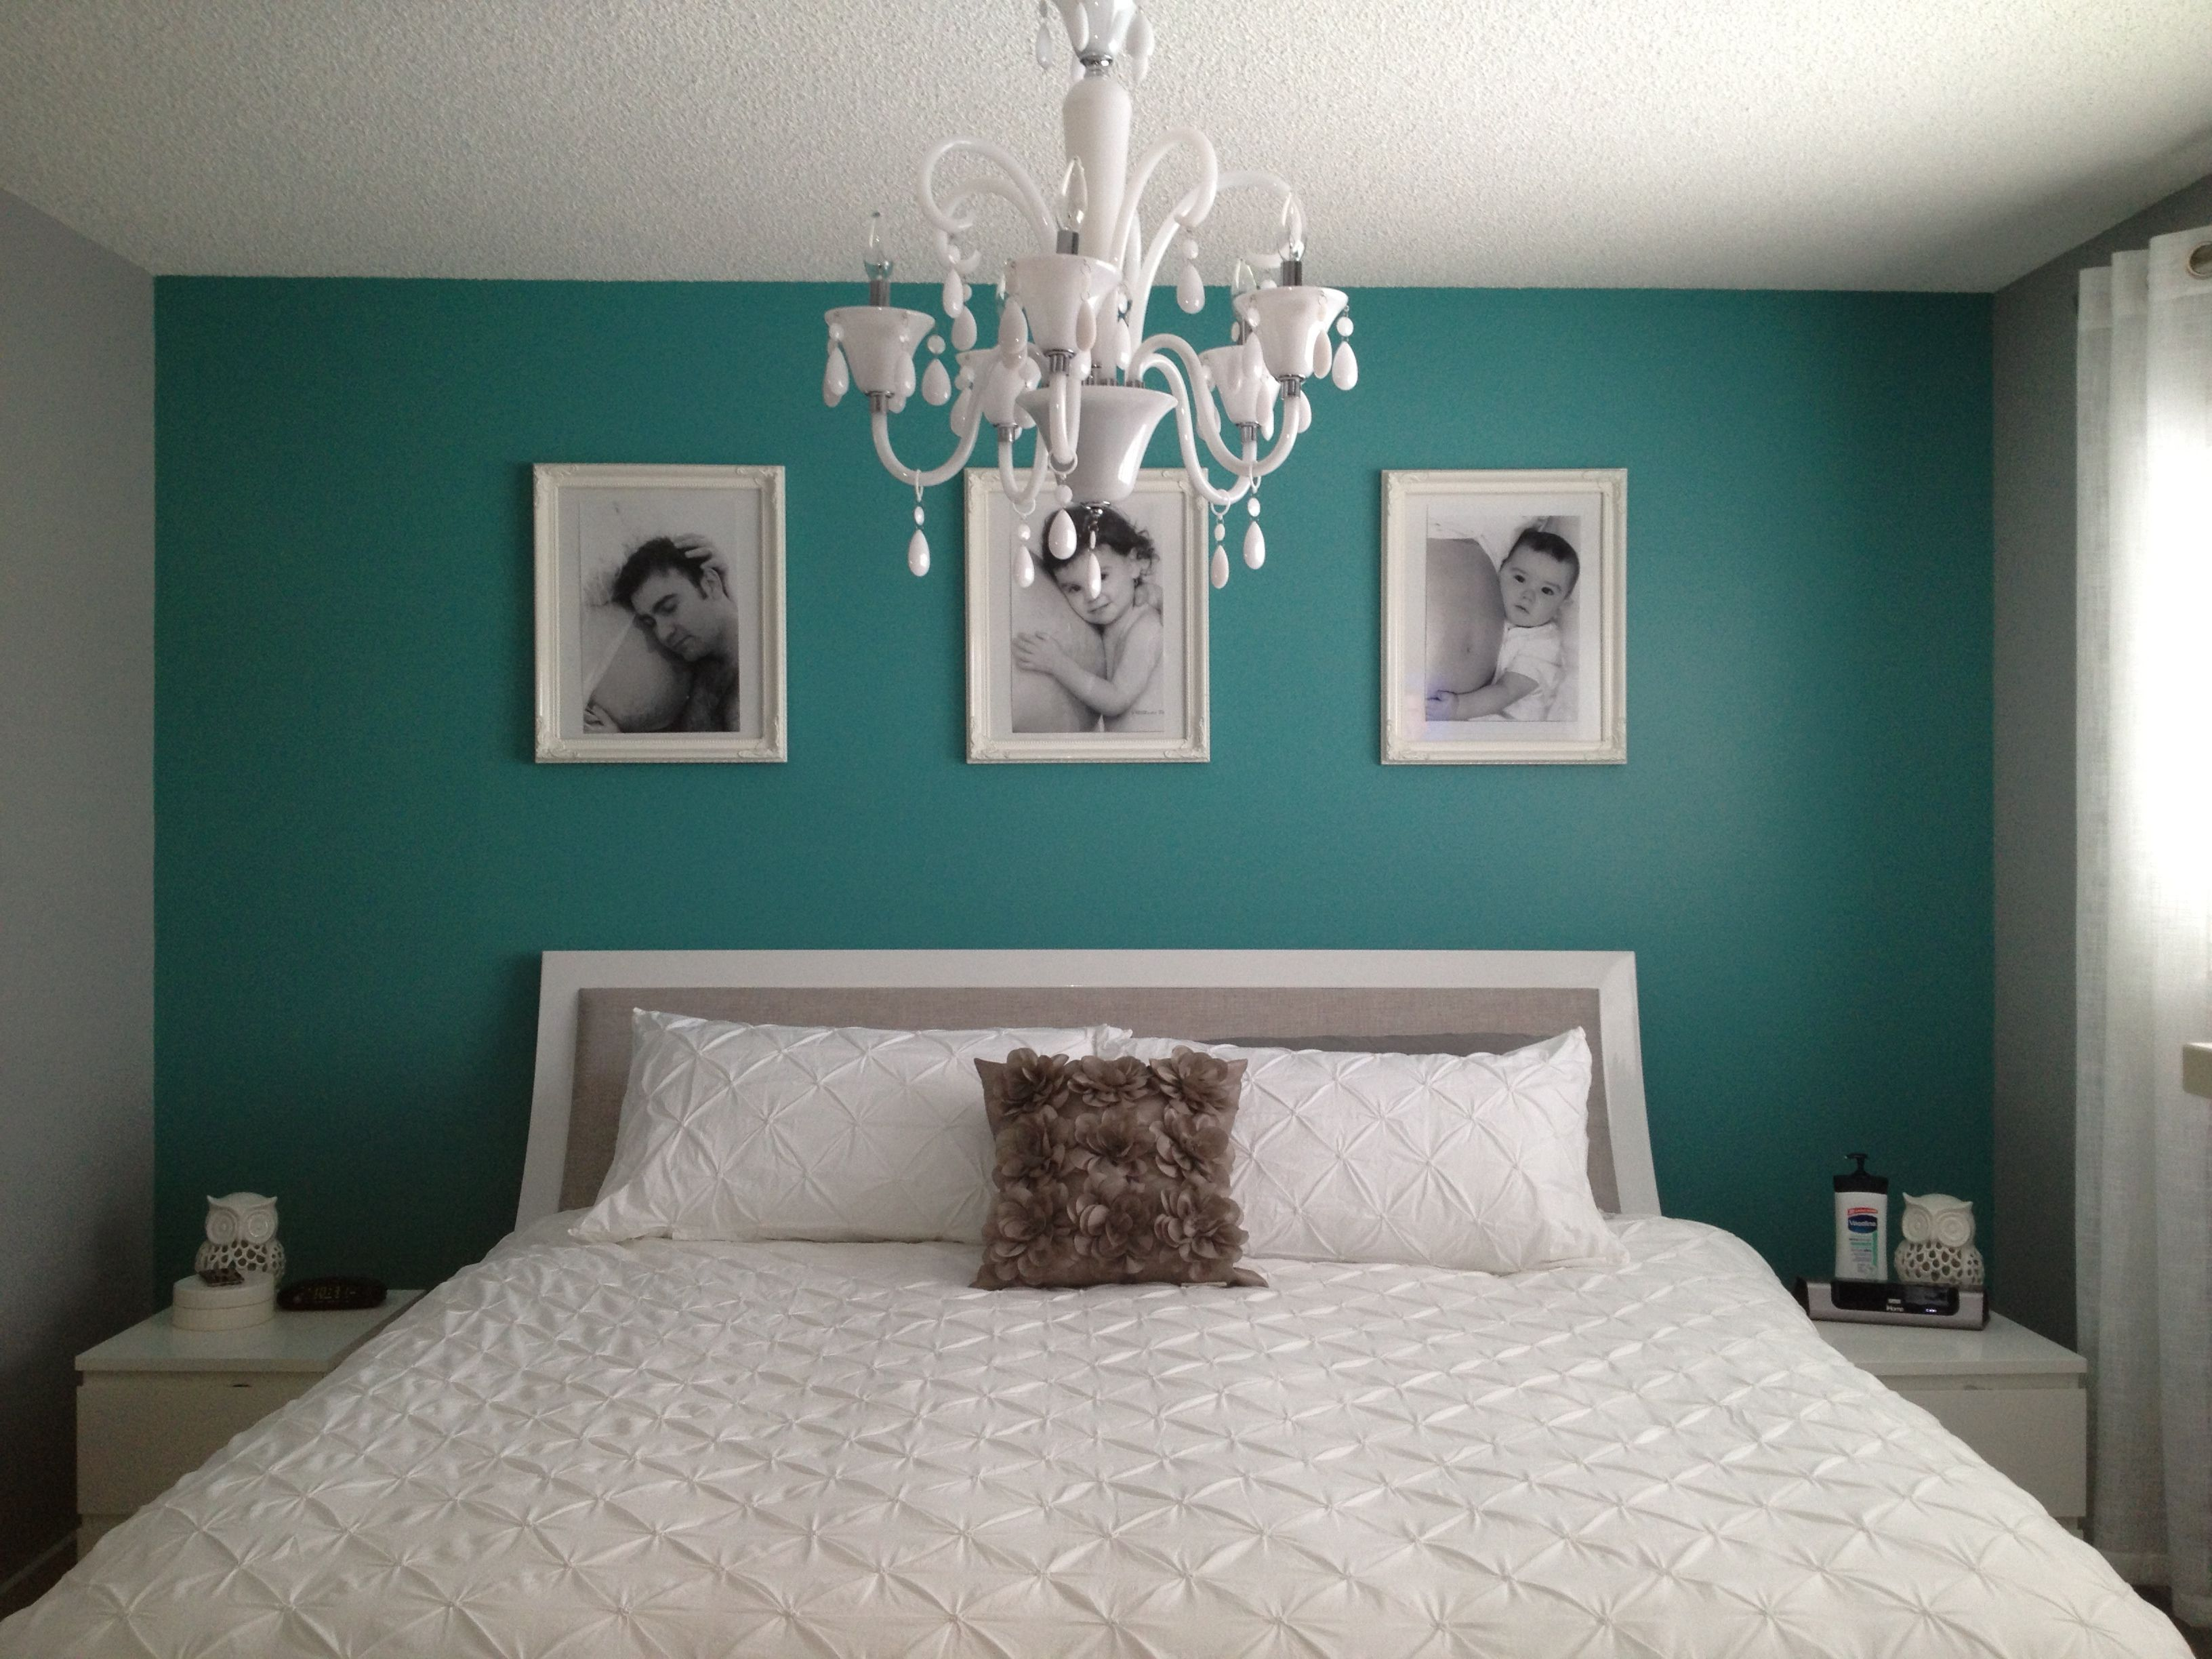 Grey And Teal Bedroom Love This Room So Much So That I Am Going Teal Bedroom Decor Bedroom Wall Colors Teal Accent Walls